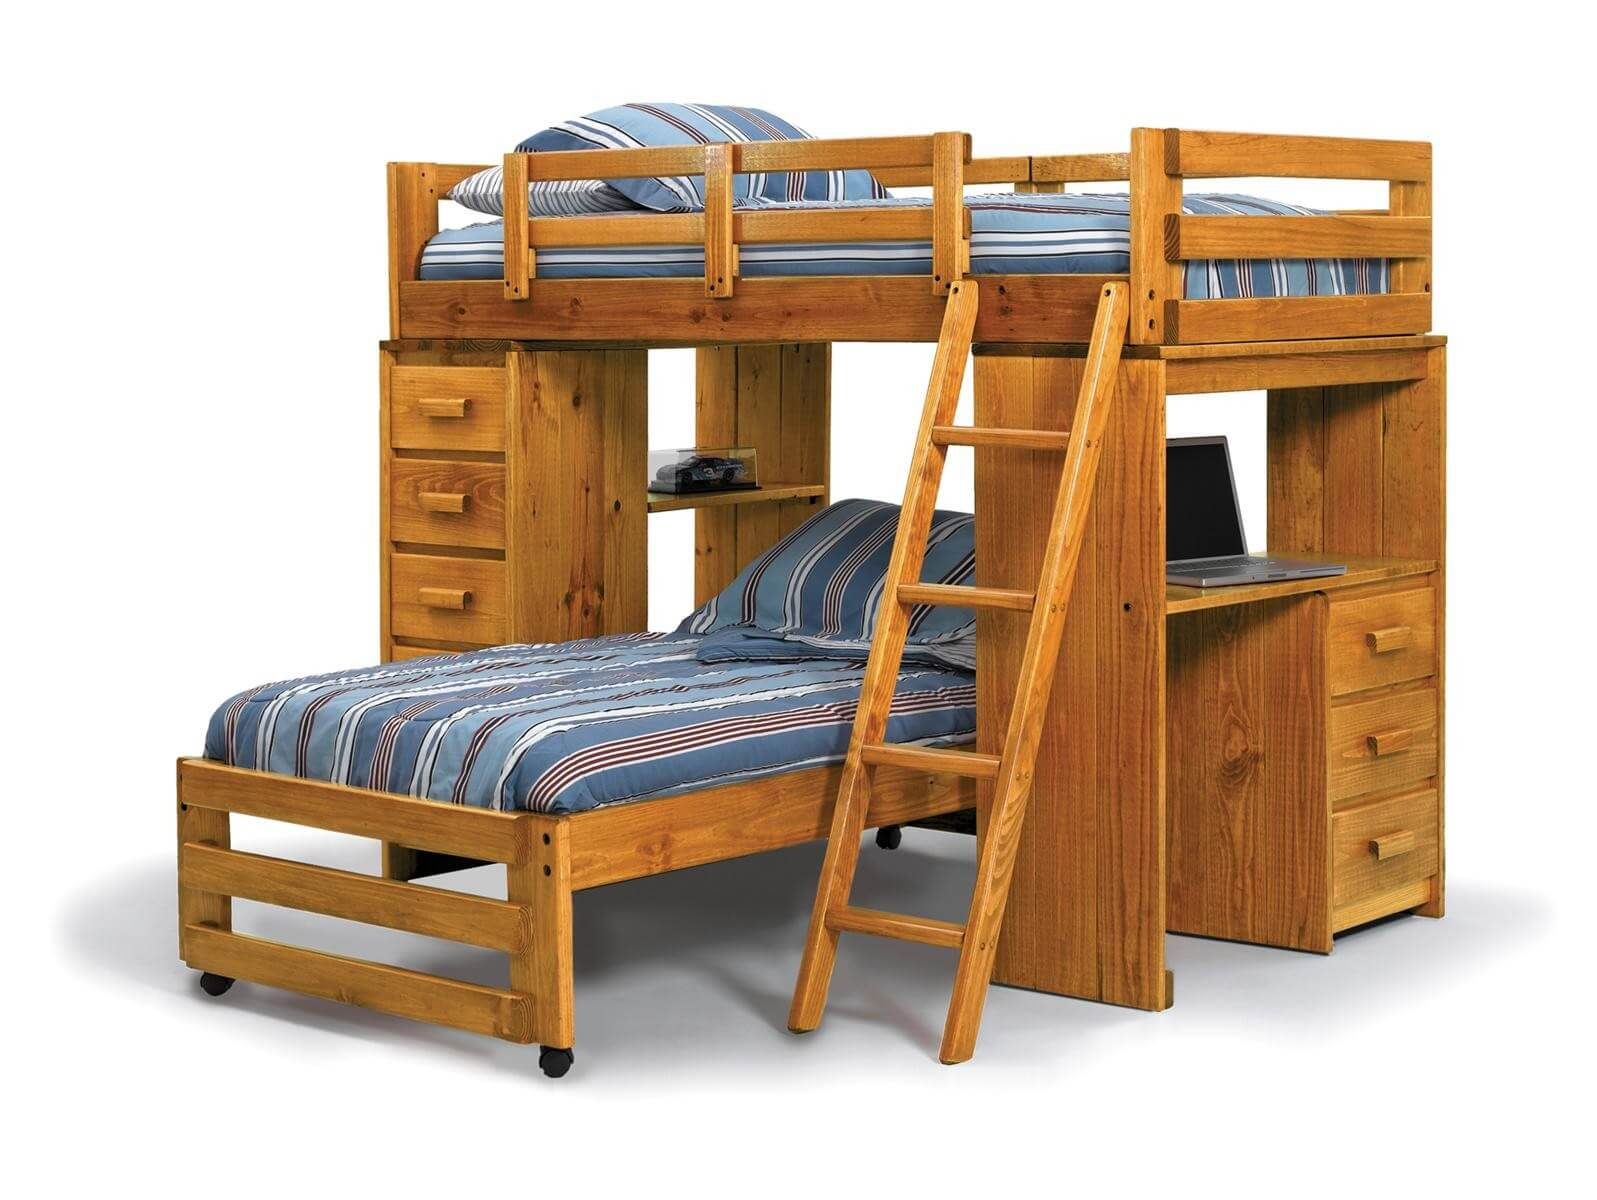 f3f2ef106f317 This pine L-shaped bunk with twin-over-twin includes a desk area